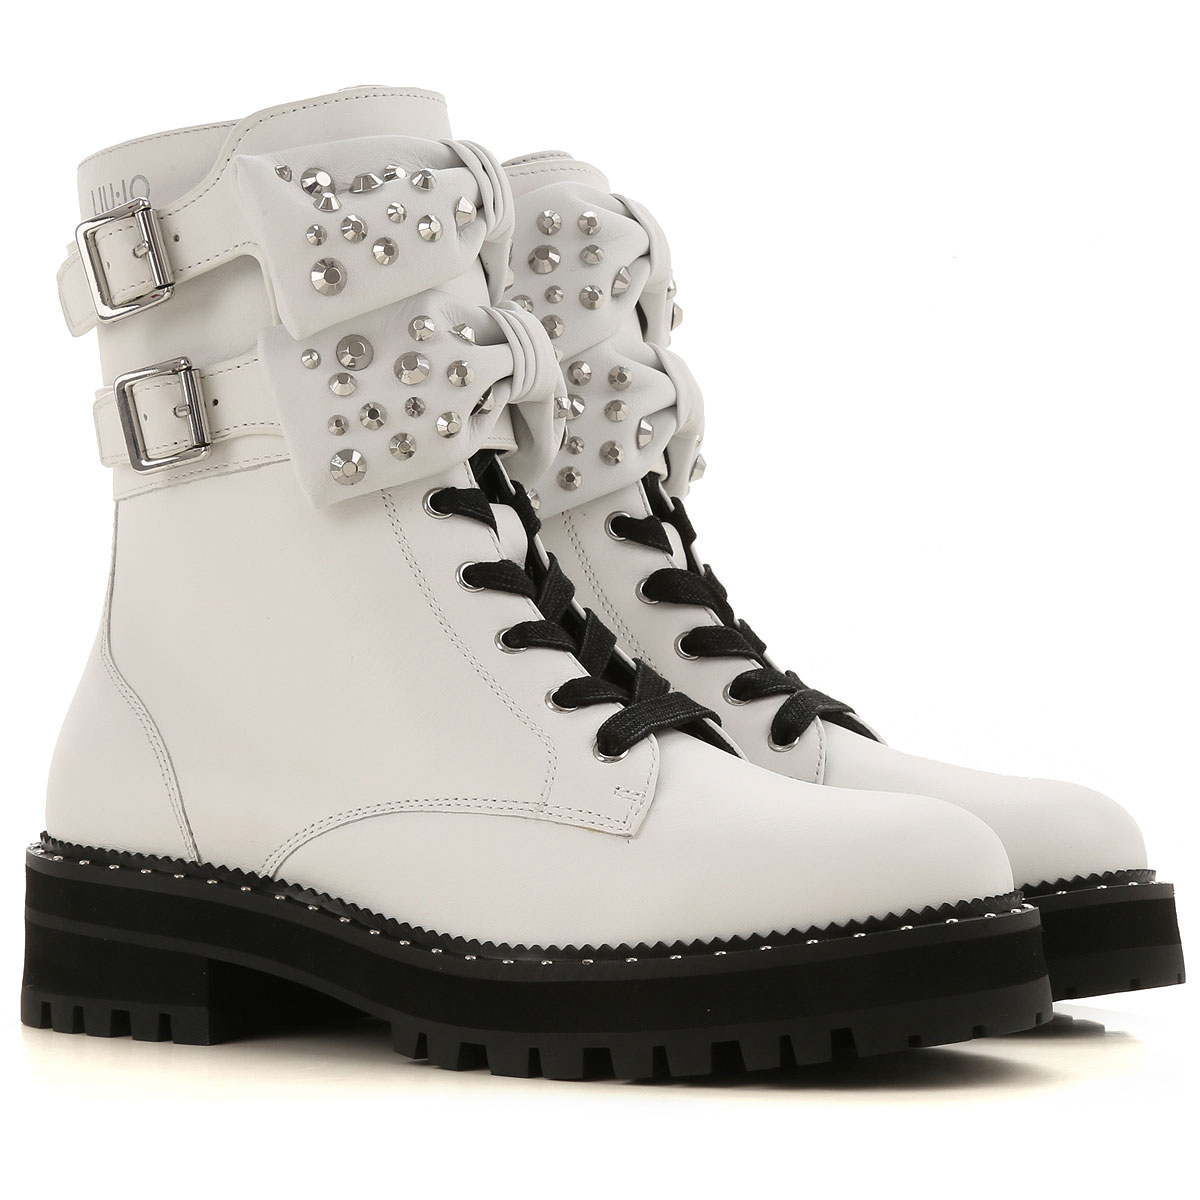 Liu Jo Boots for Women, Booties On Sale, White, Leather, 2019, 10 5 6 9